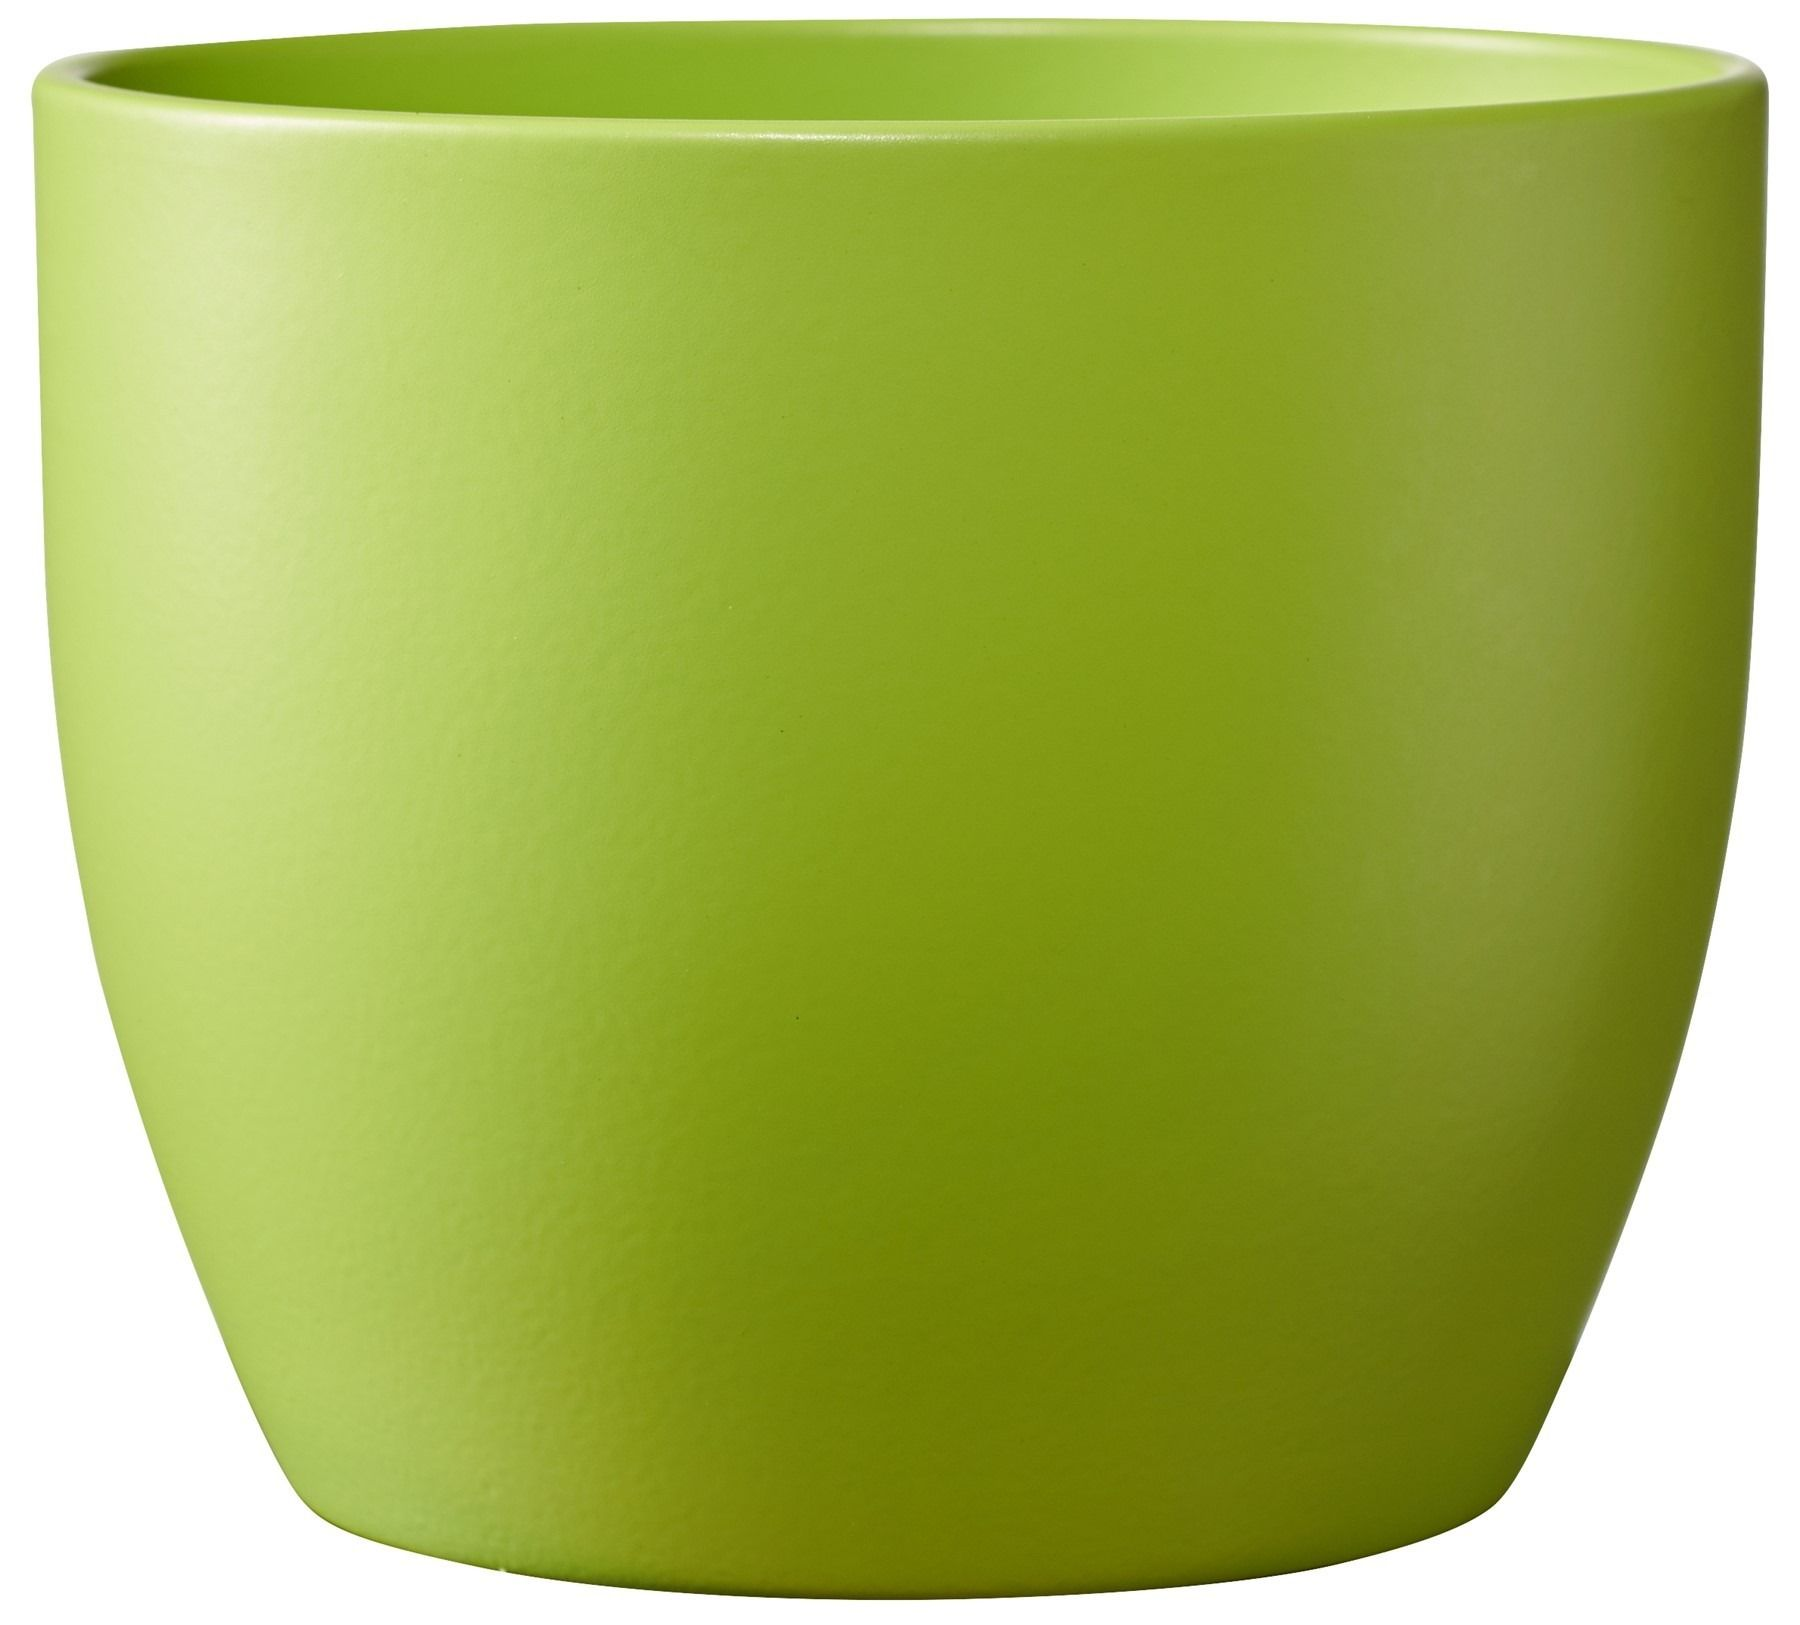 Basel Colour Splash Matte Banana Green (W12cm x H10cm)